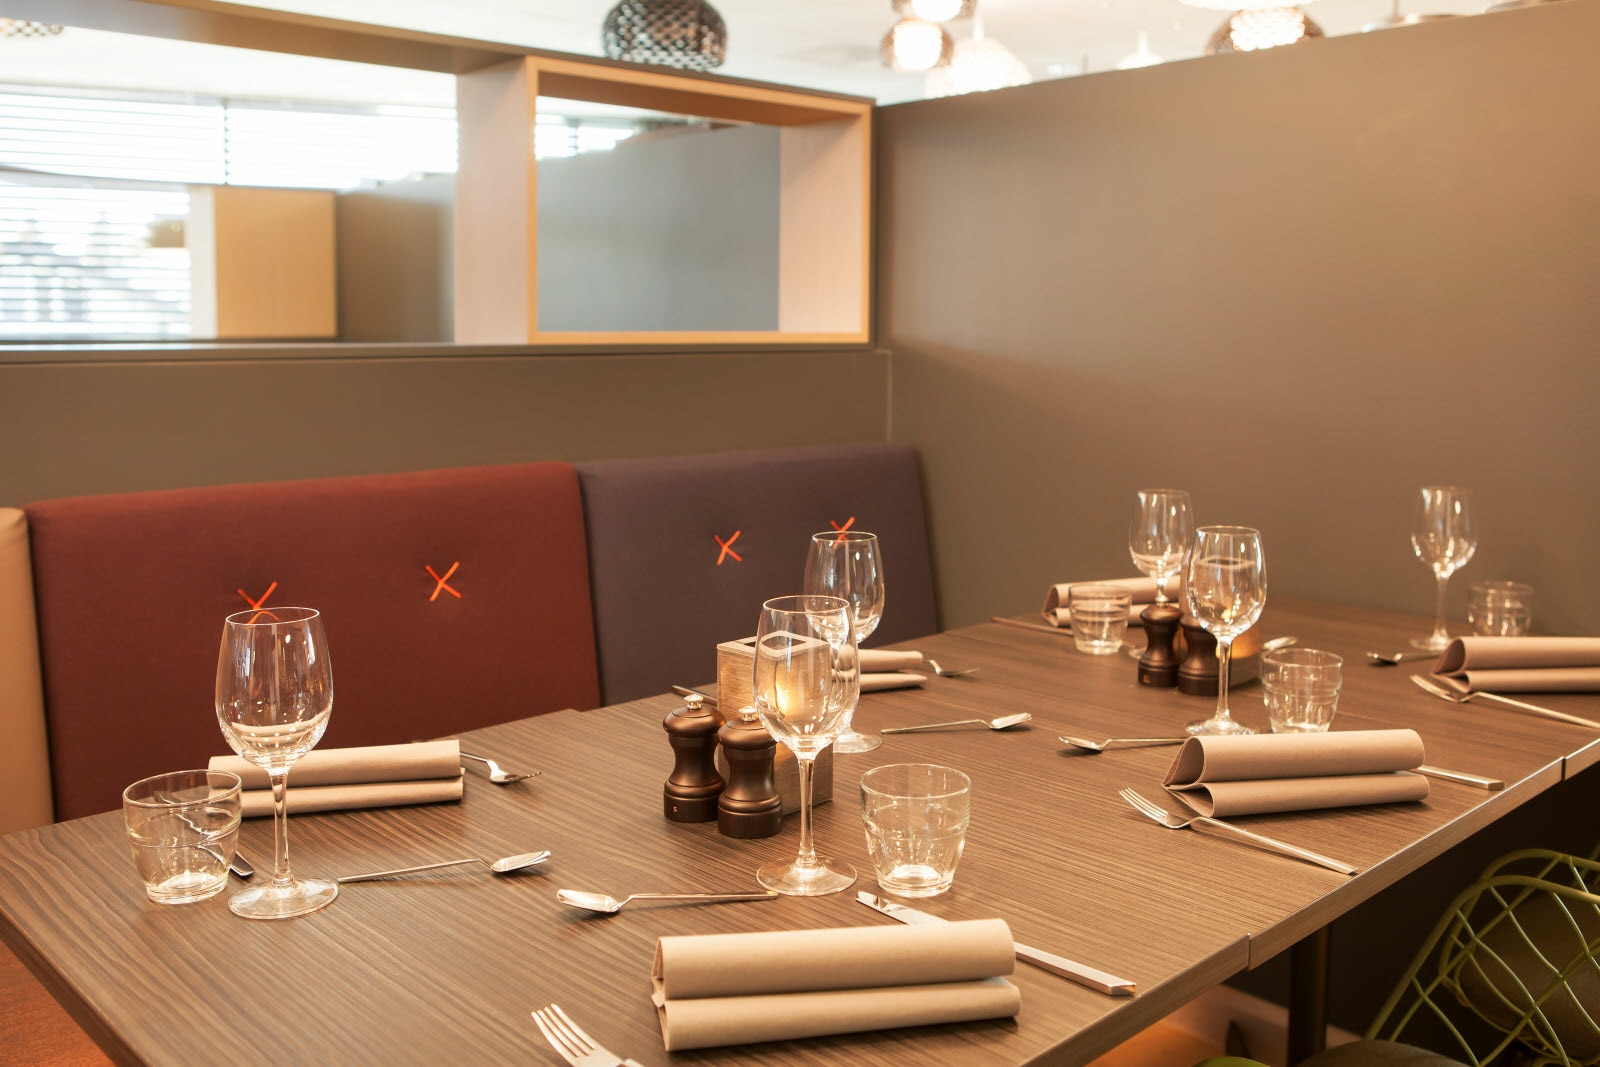 Scandic Lerkendal, restaurant, Food, breakfast, furniture, table, chair